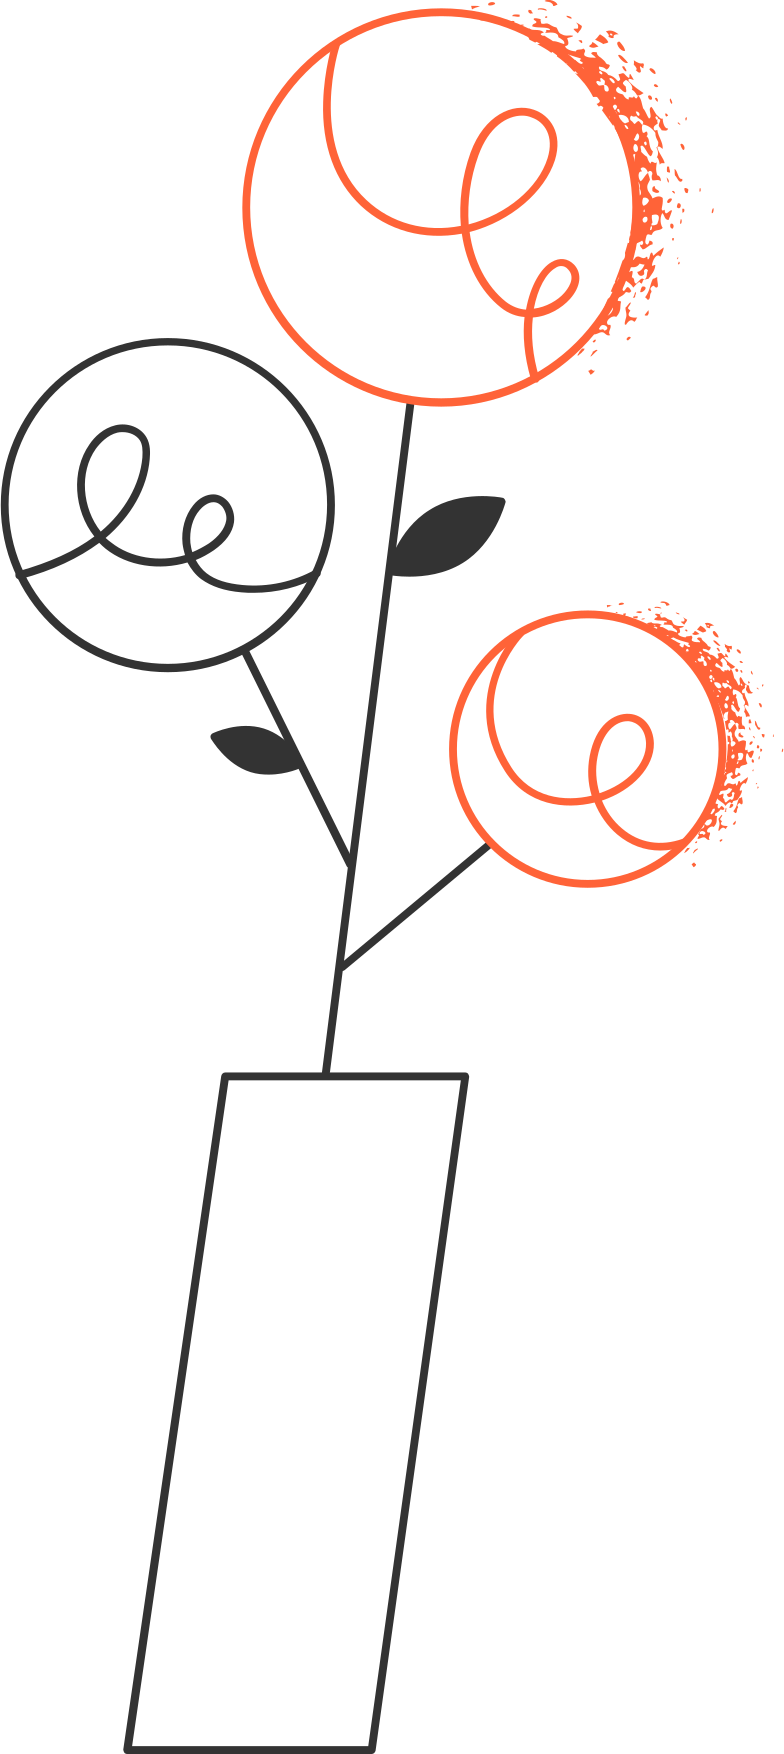 style flowers in the vase Vector images in PNG and SVG | Icons8 Illustrations